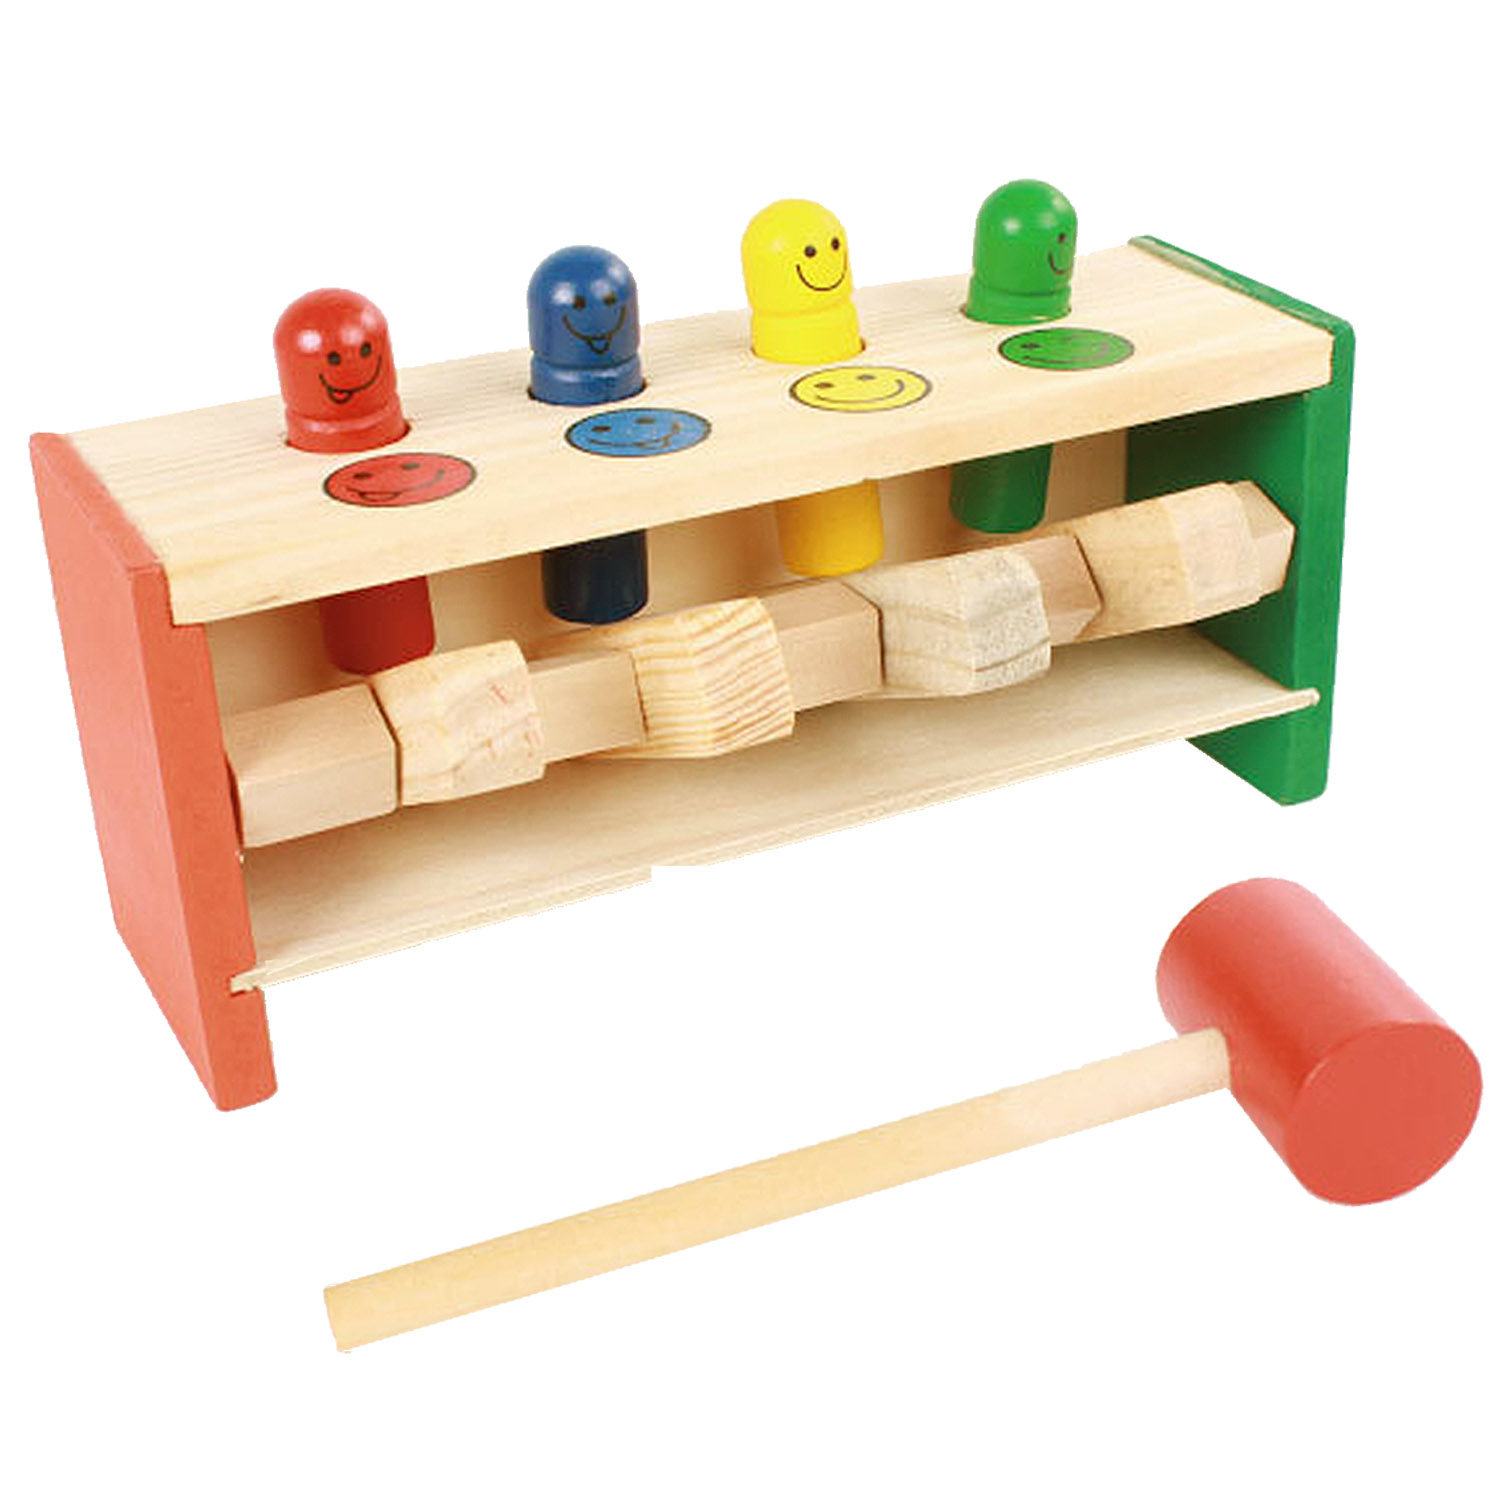 Us 521 50 Offkid Baby Toddler Wooden Toy Colorful Smile Face Pegs Wooden Pounding Bench With Hammer Educational Wooden Pound Beating Toy In